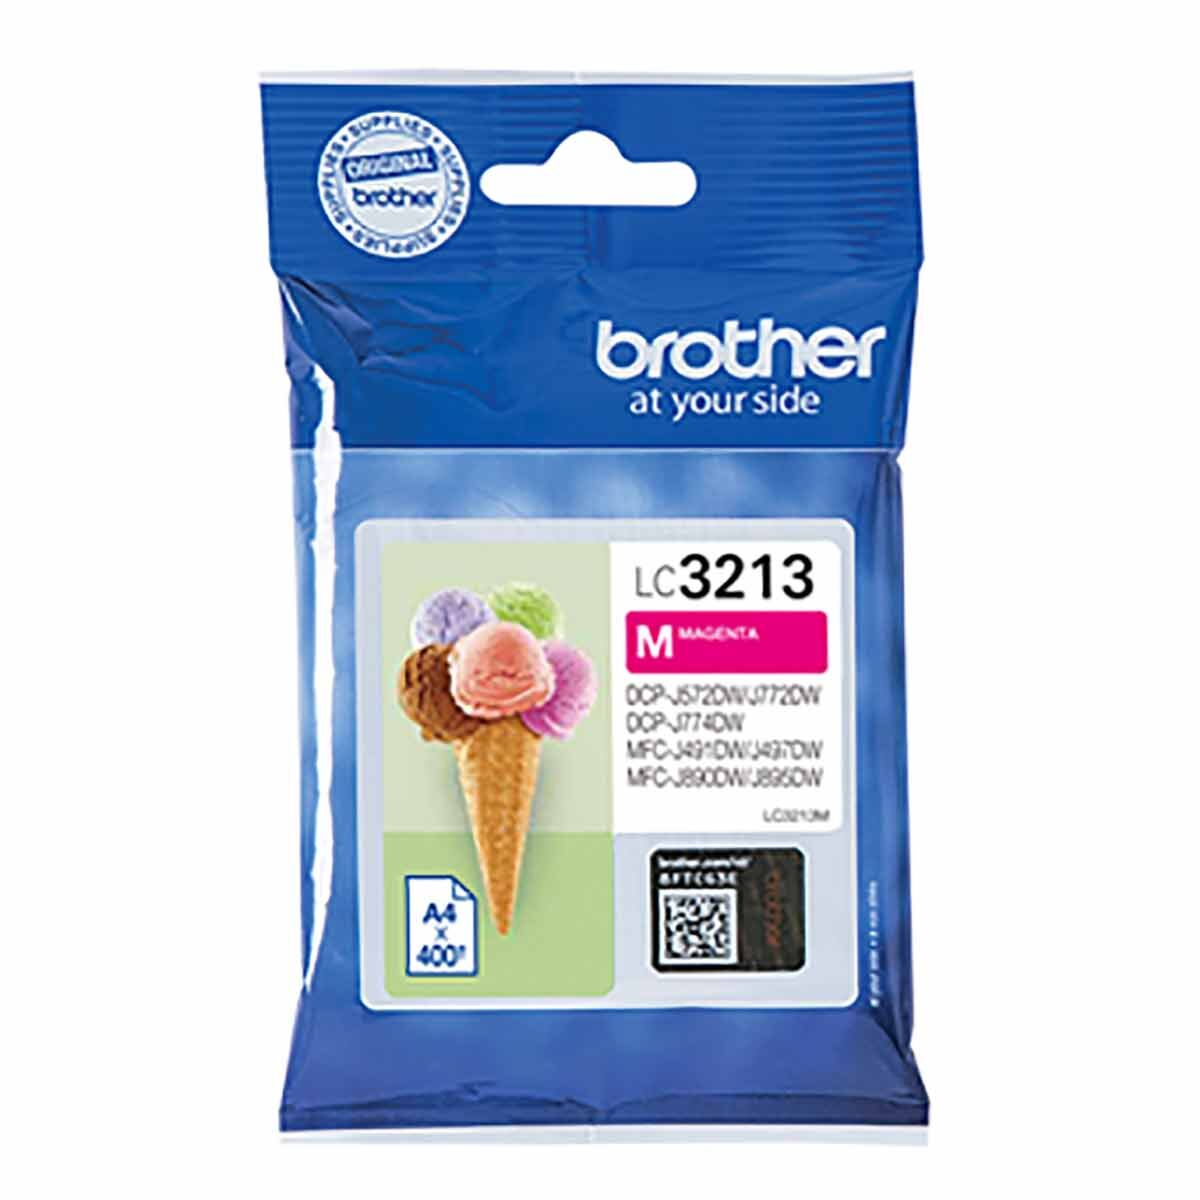 Brother Original Ink Cartridge Magenta